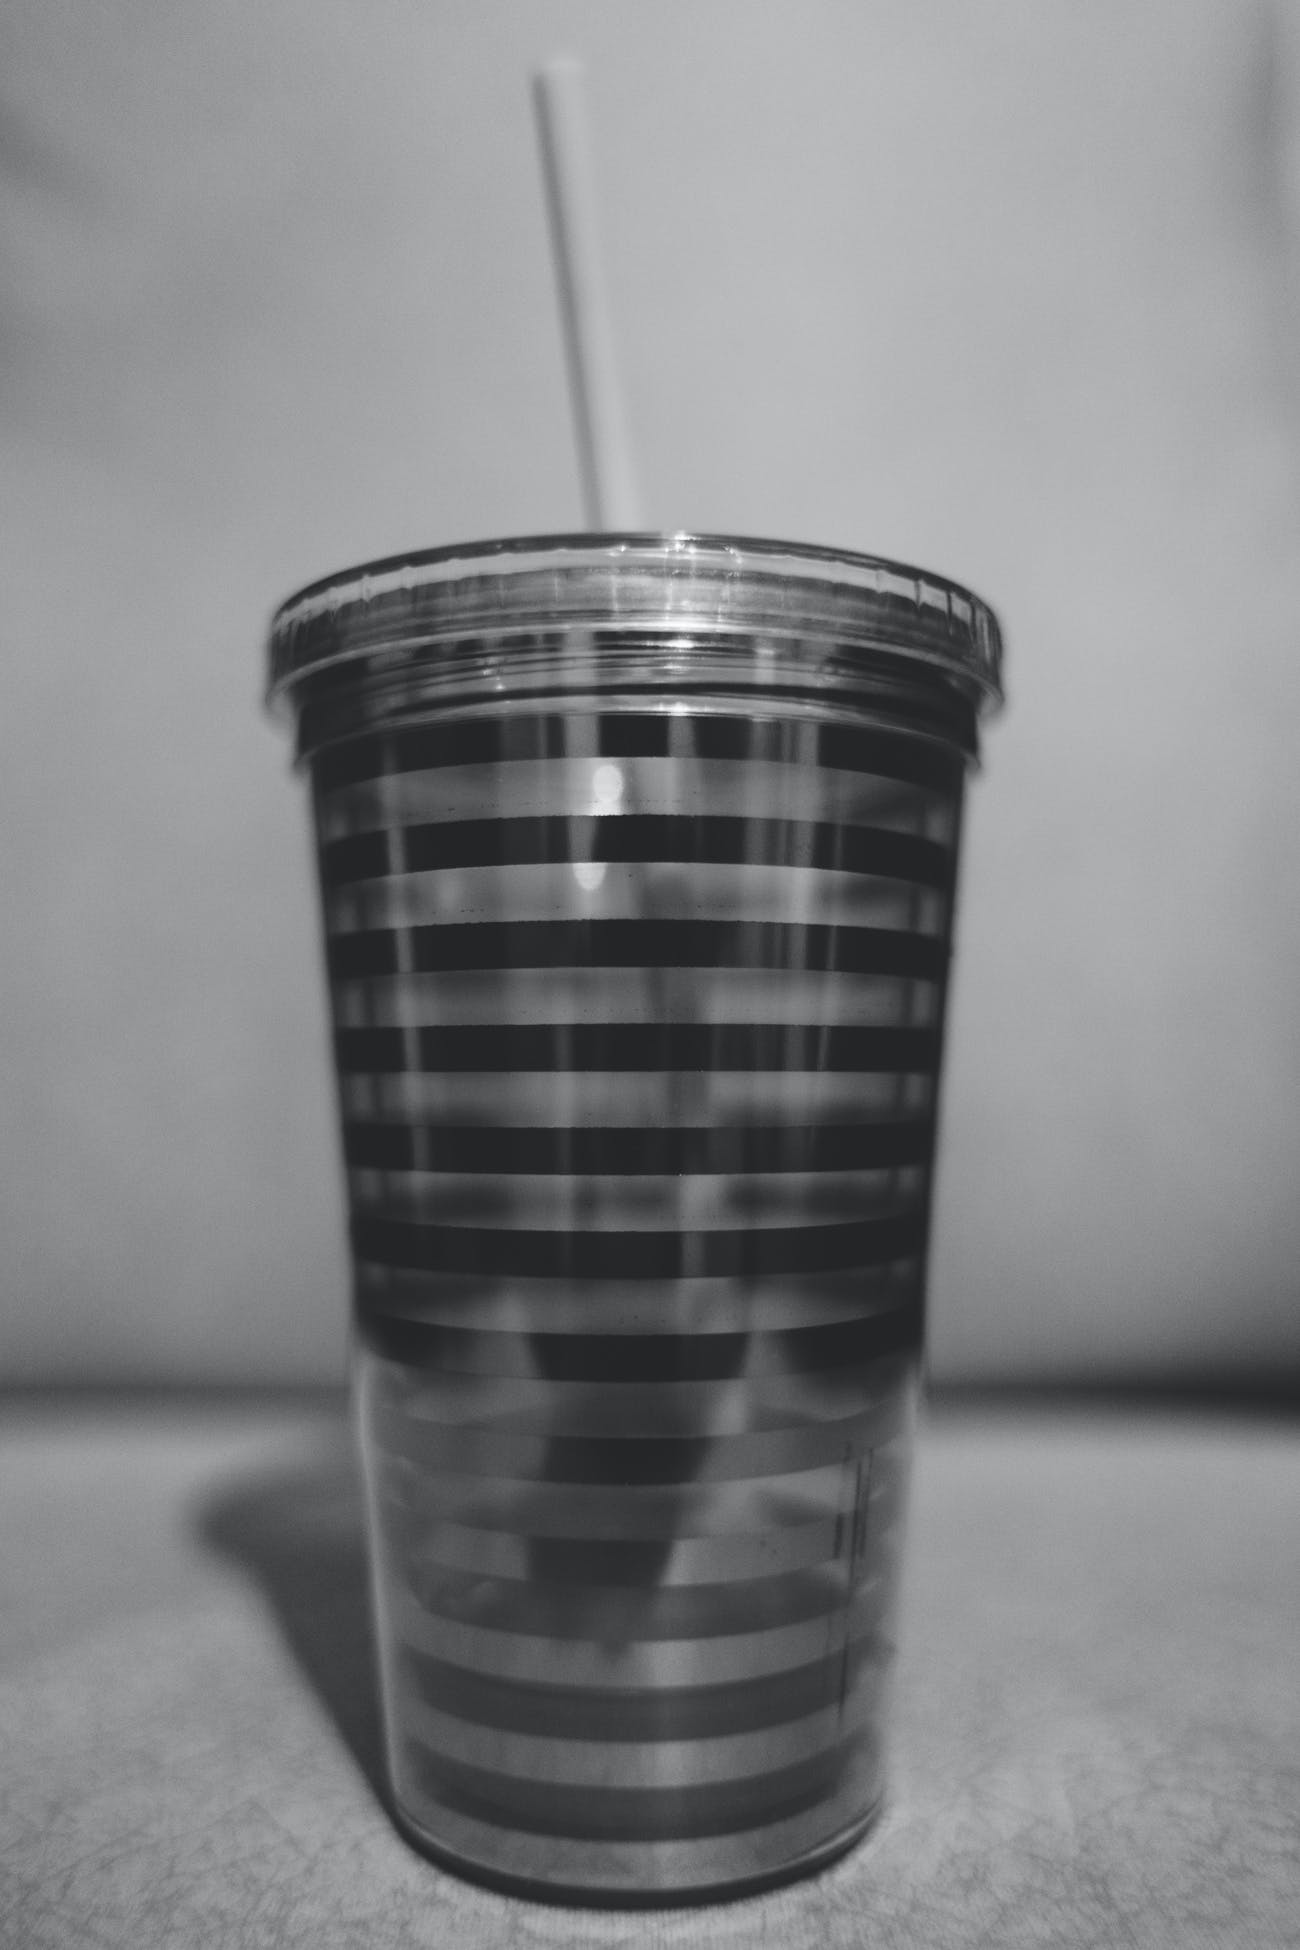 Free stock photo of black and-white, cup